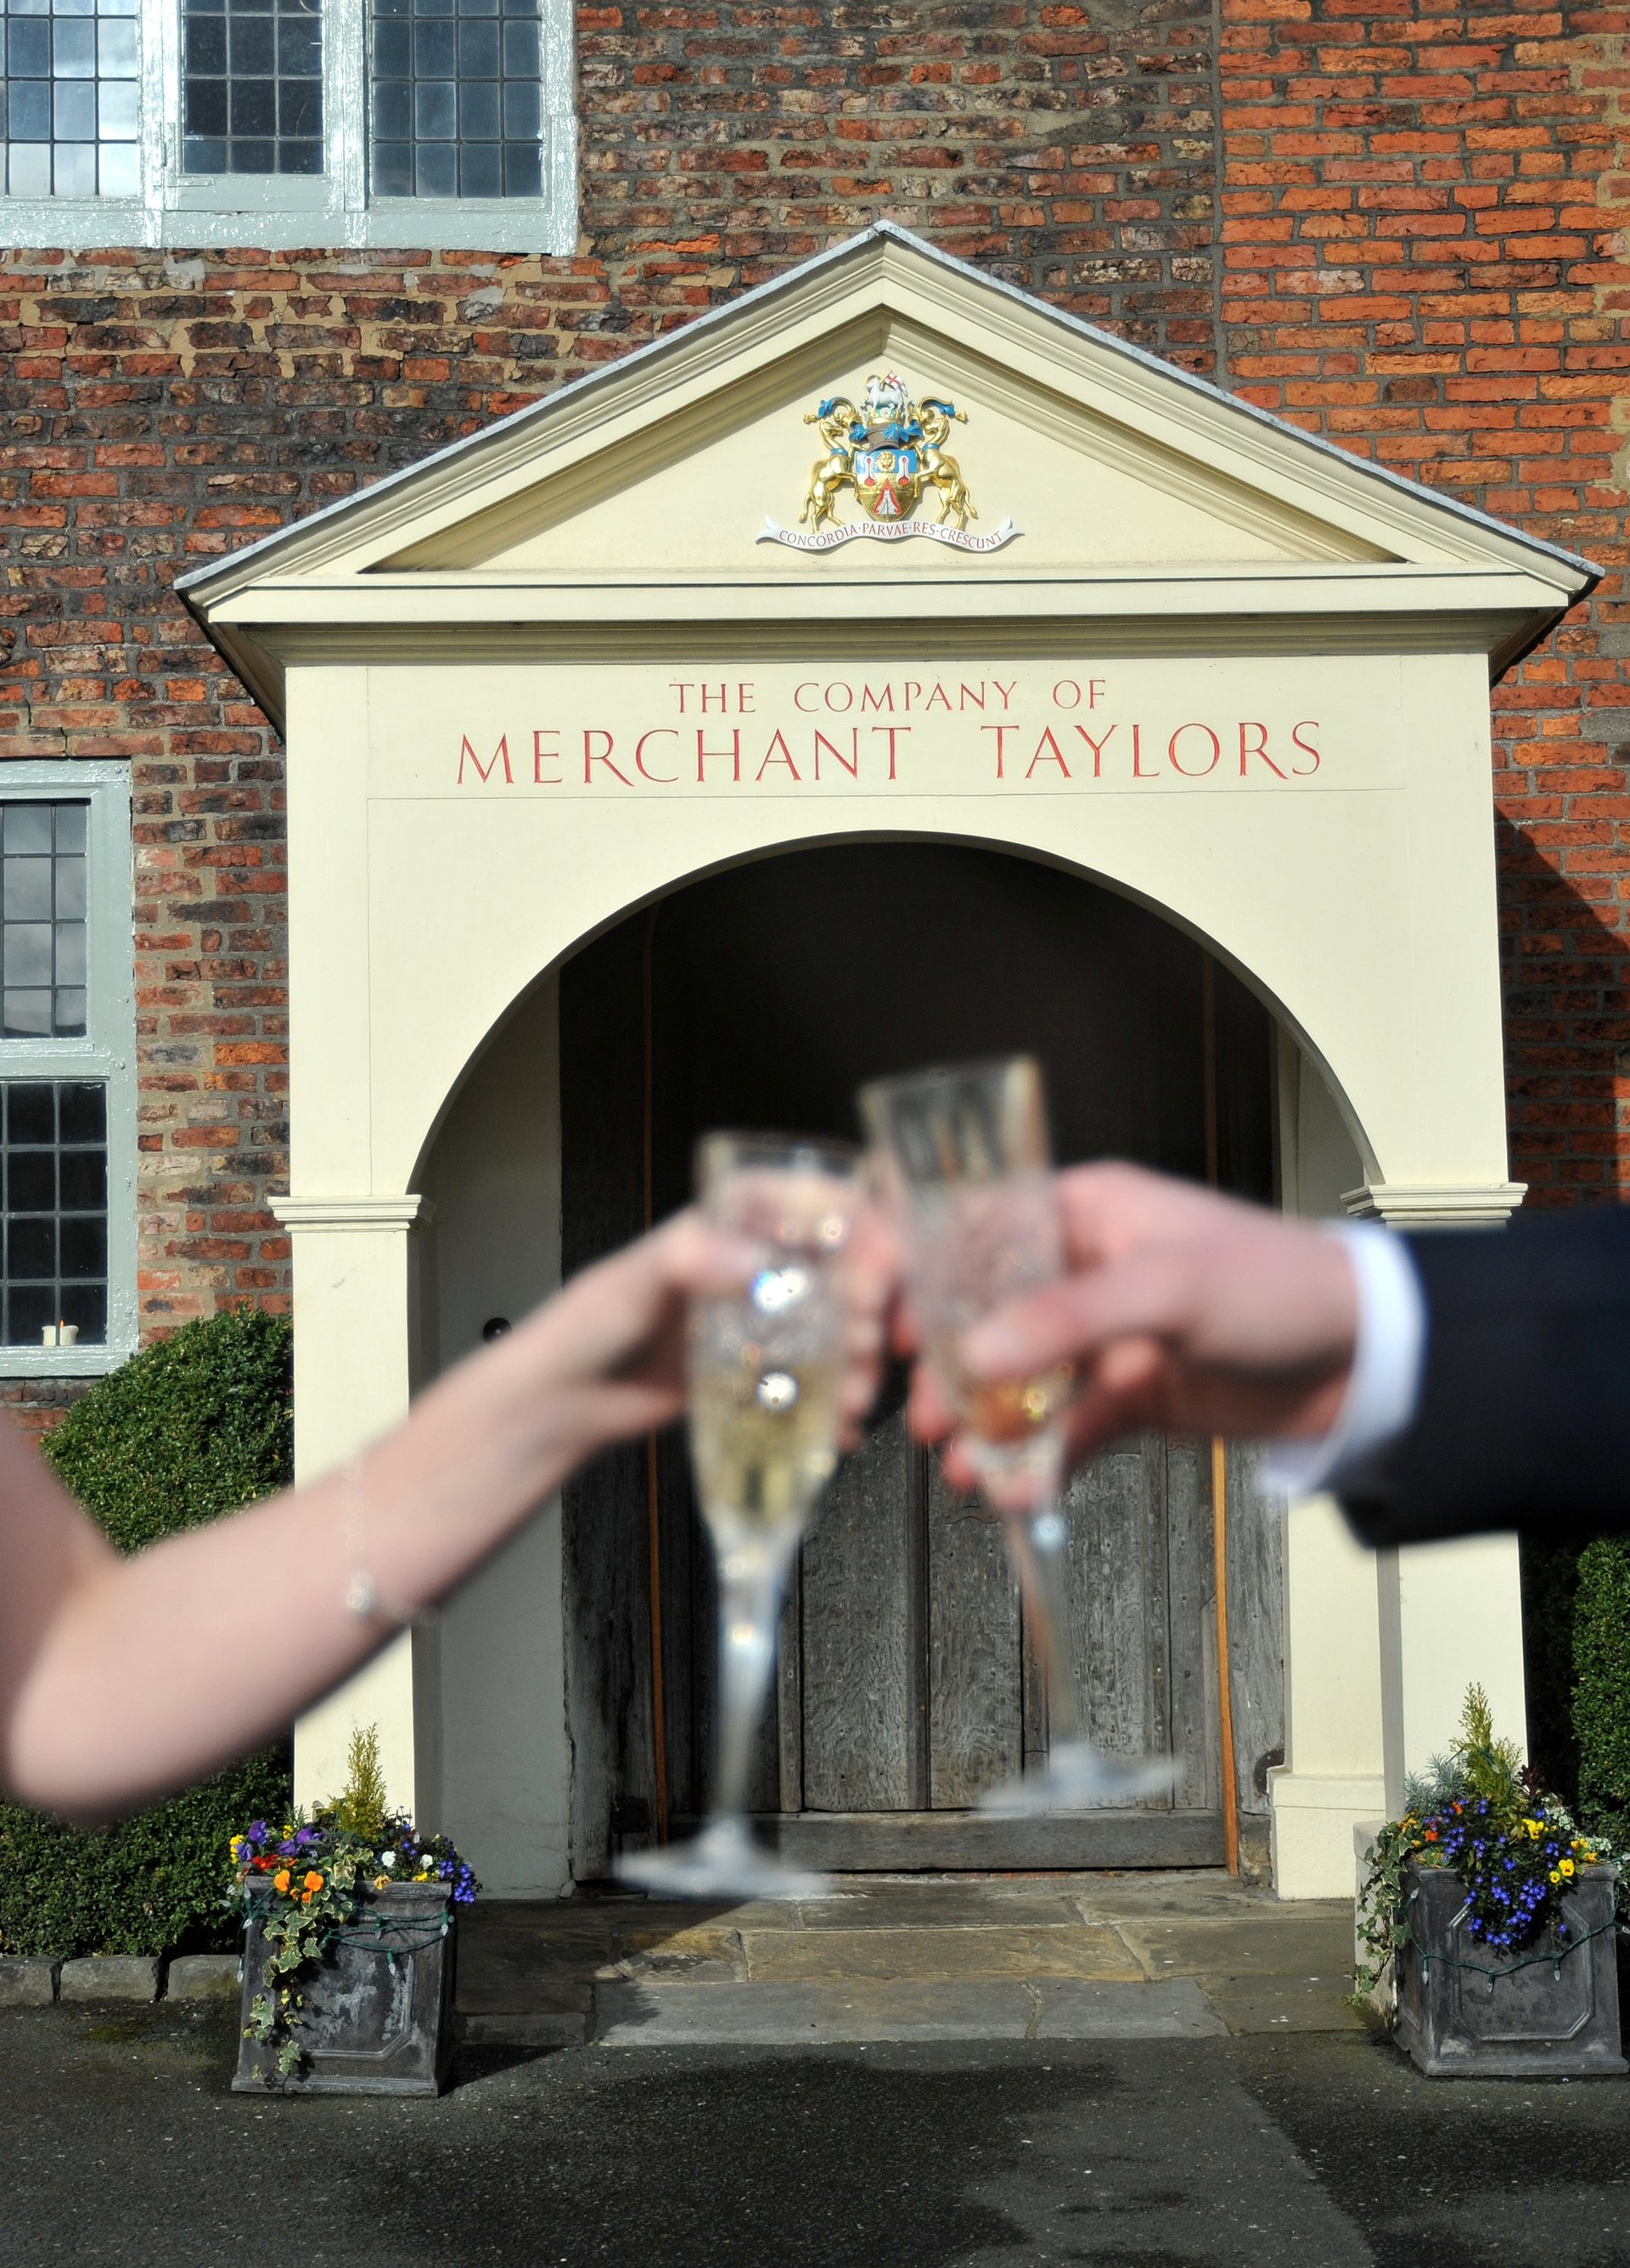 For A Wonderful Winter Wedding Dont Look Any Further Than The Merchant Taylors Hall York Our Packages Include Four Course Breakfast